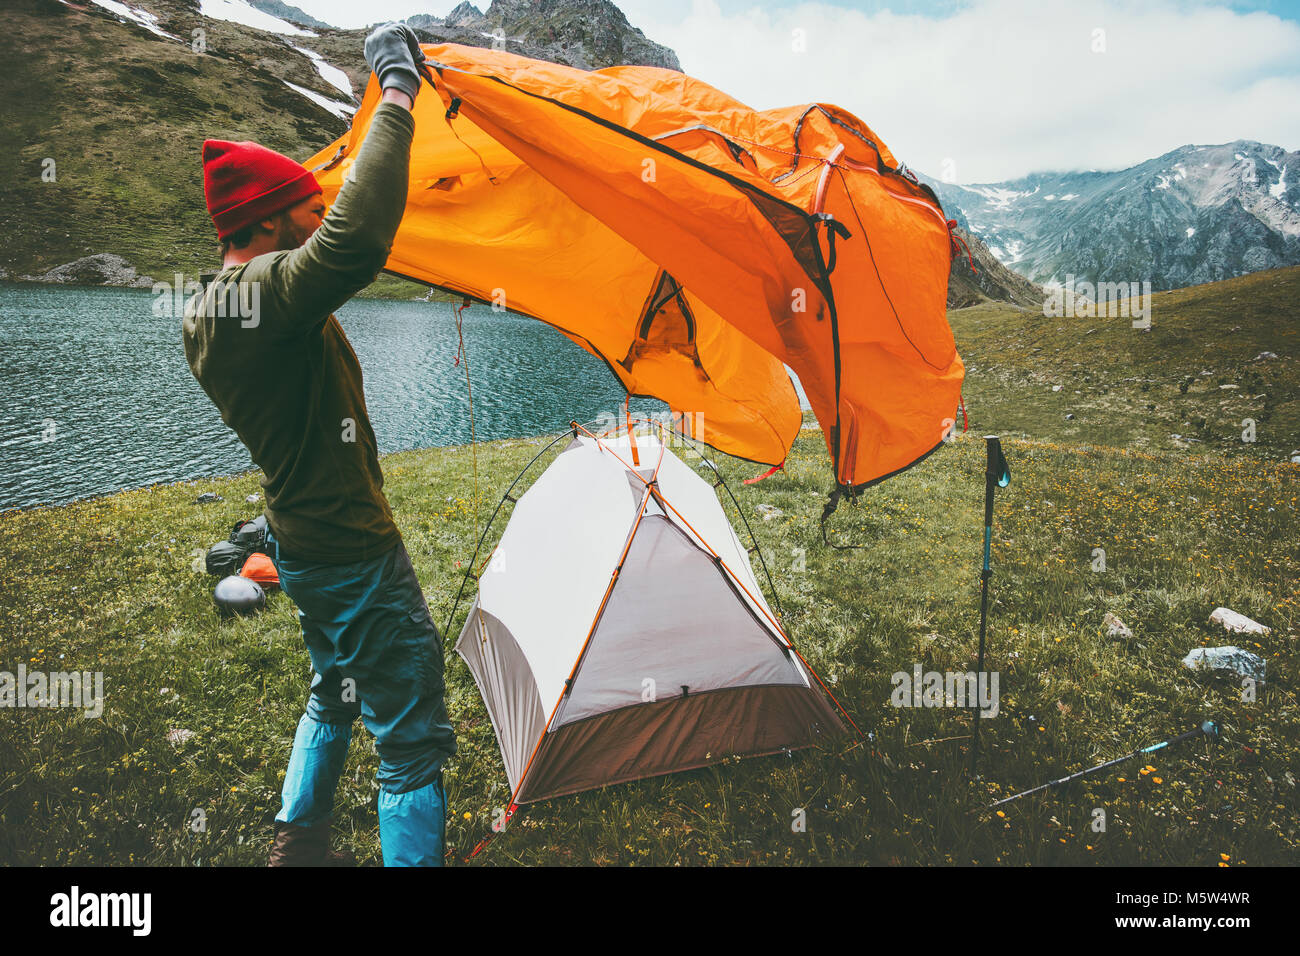 Man Traveler pitching tent camping gear outdoor Travel adventure lifestyle concept summer journey vacations in mountains - Stock Image